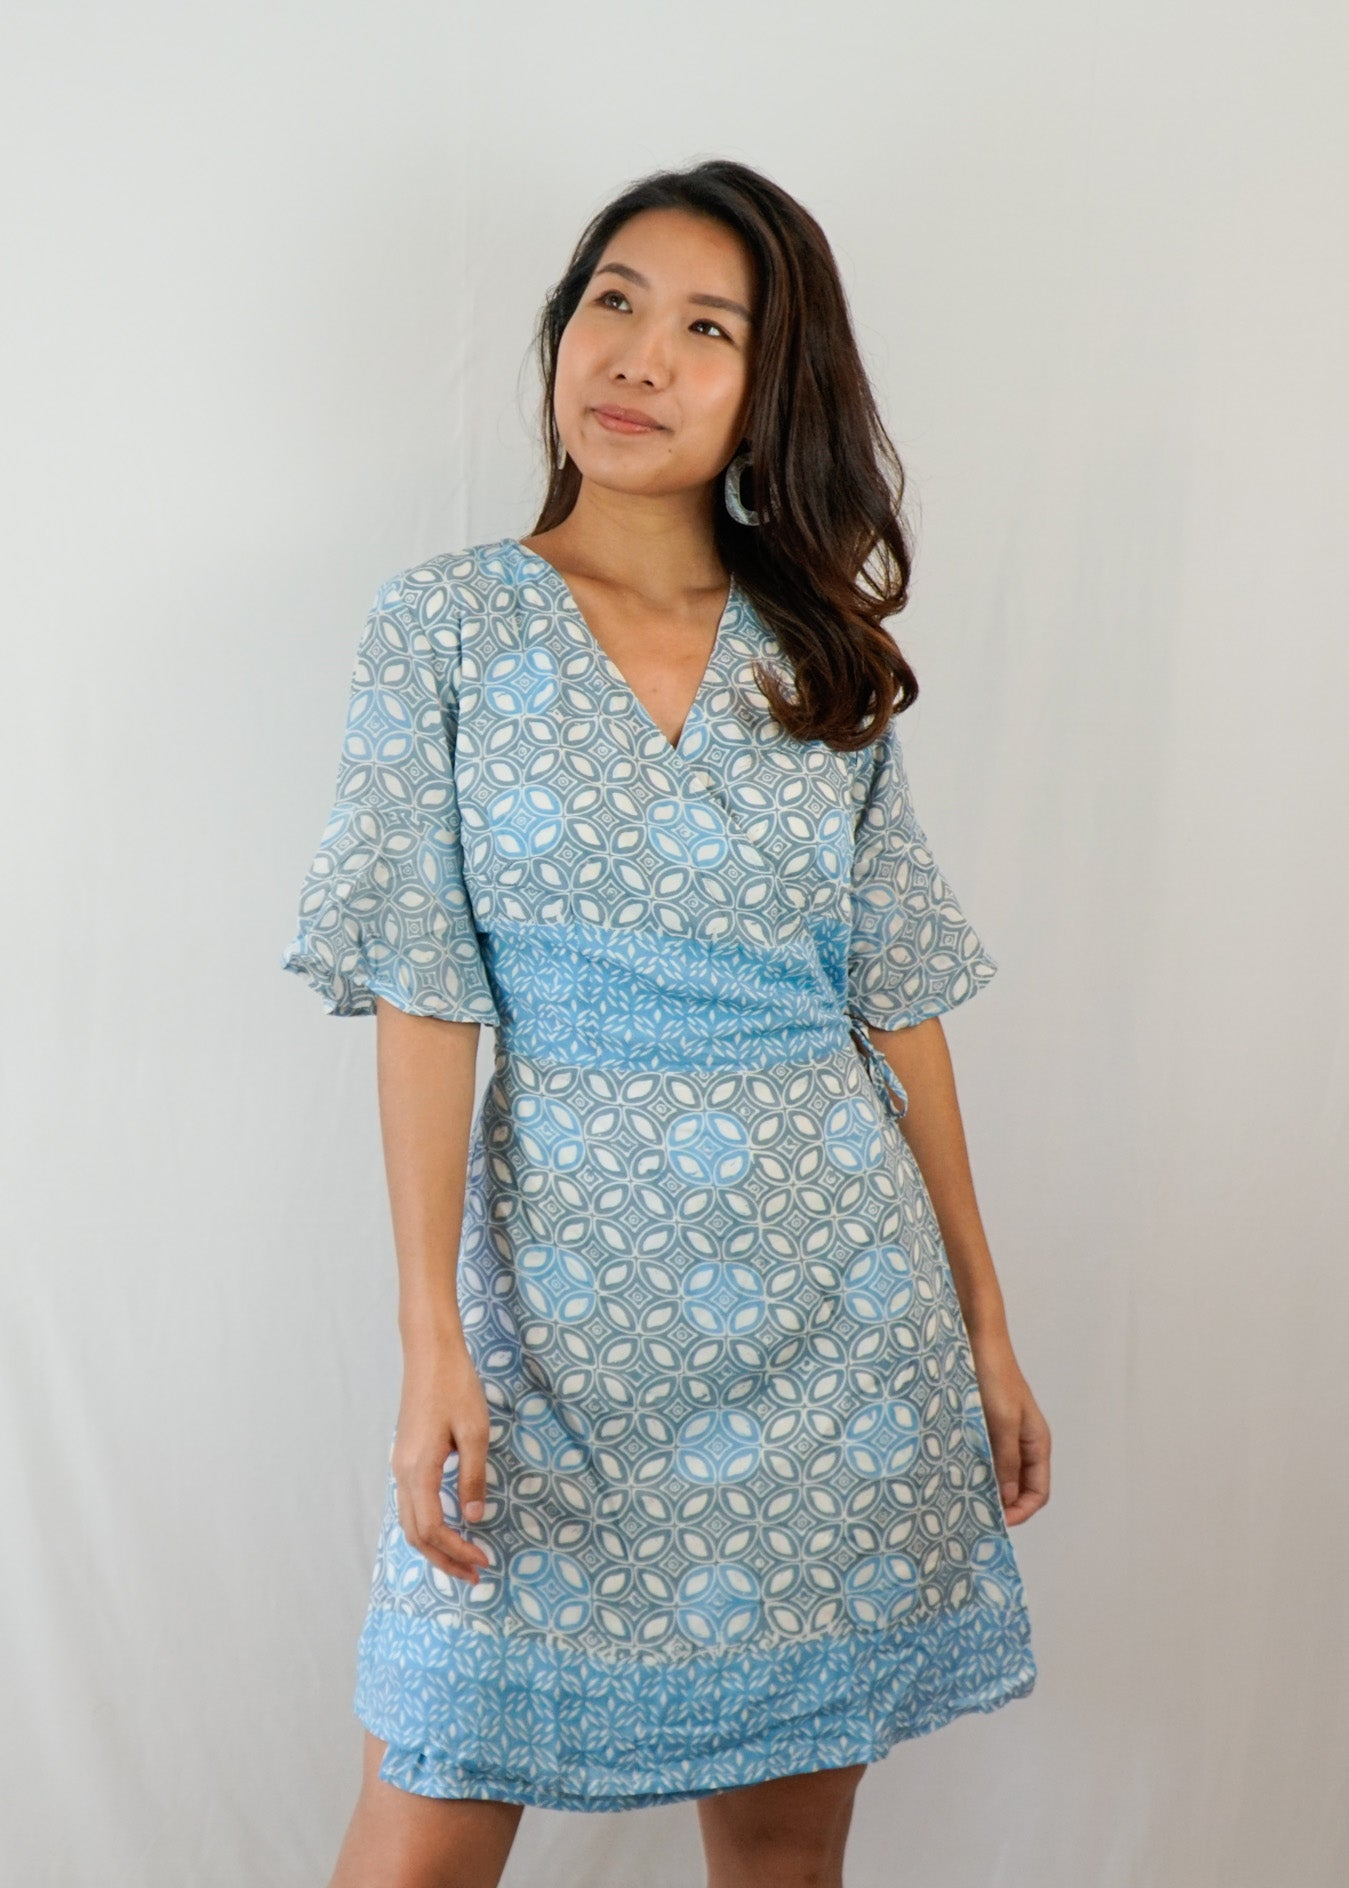 Magnolia Batik Wrap Dress in Blue-Grey Kawung